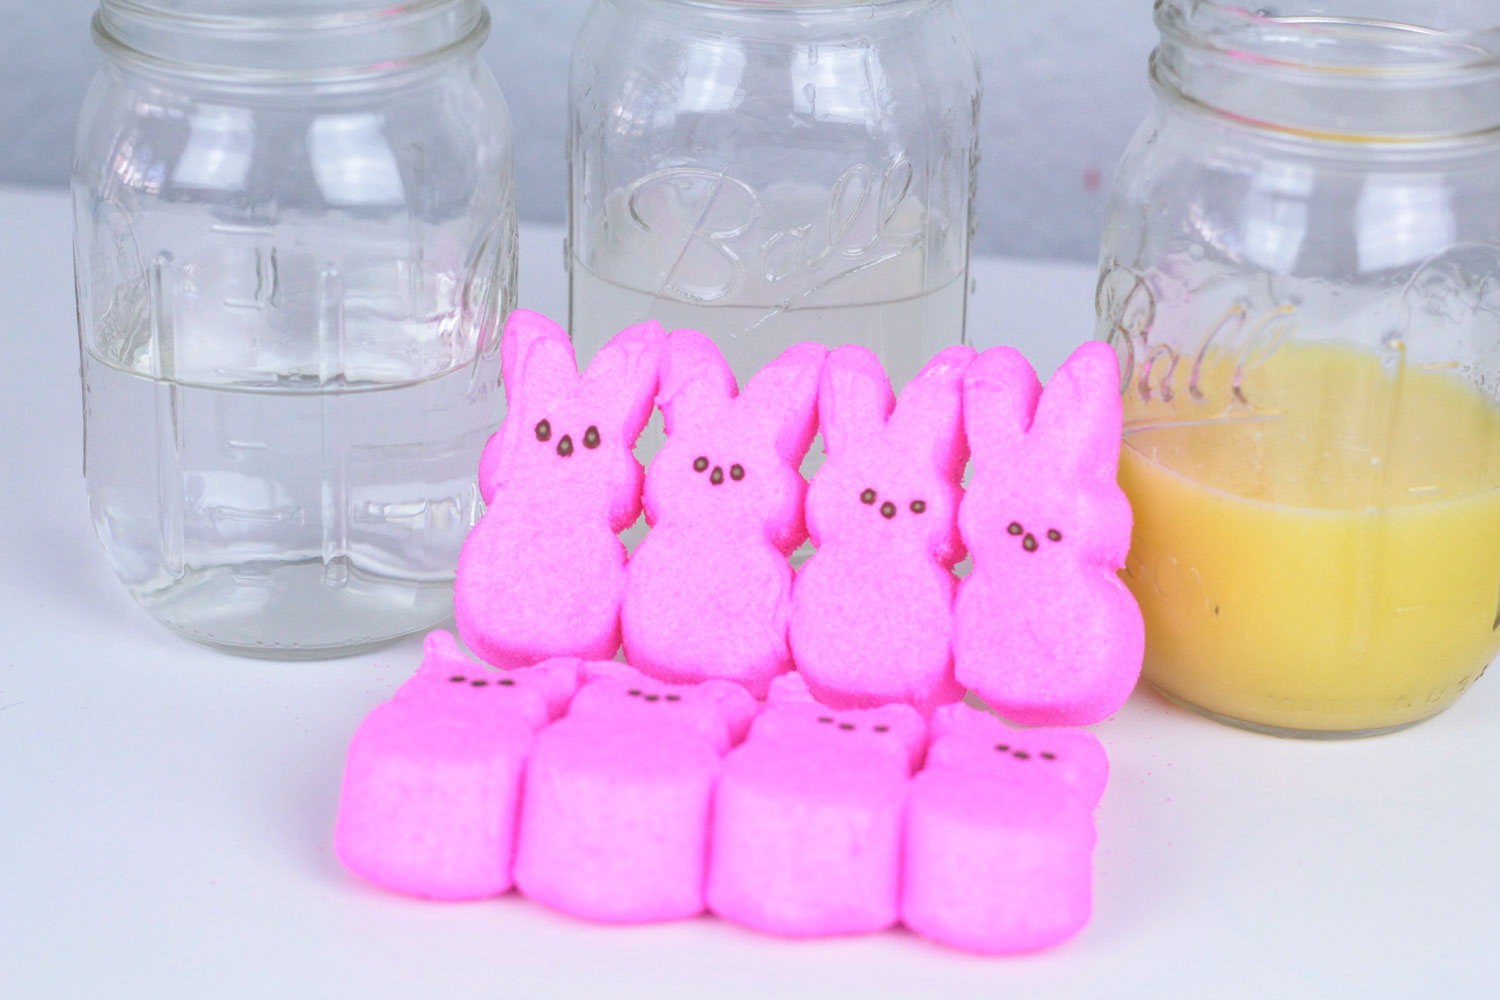 Getting the Peeps ready for the dissolving Peeps science experiment.